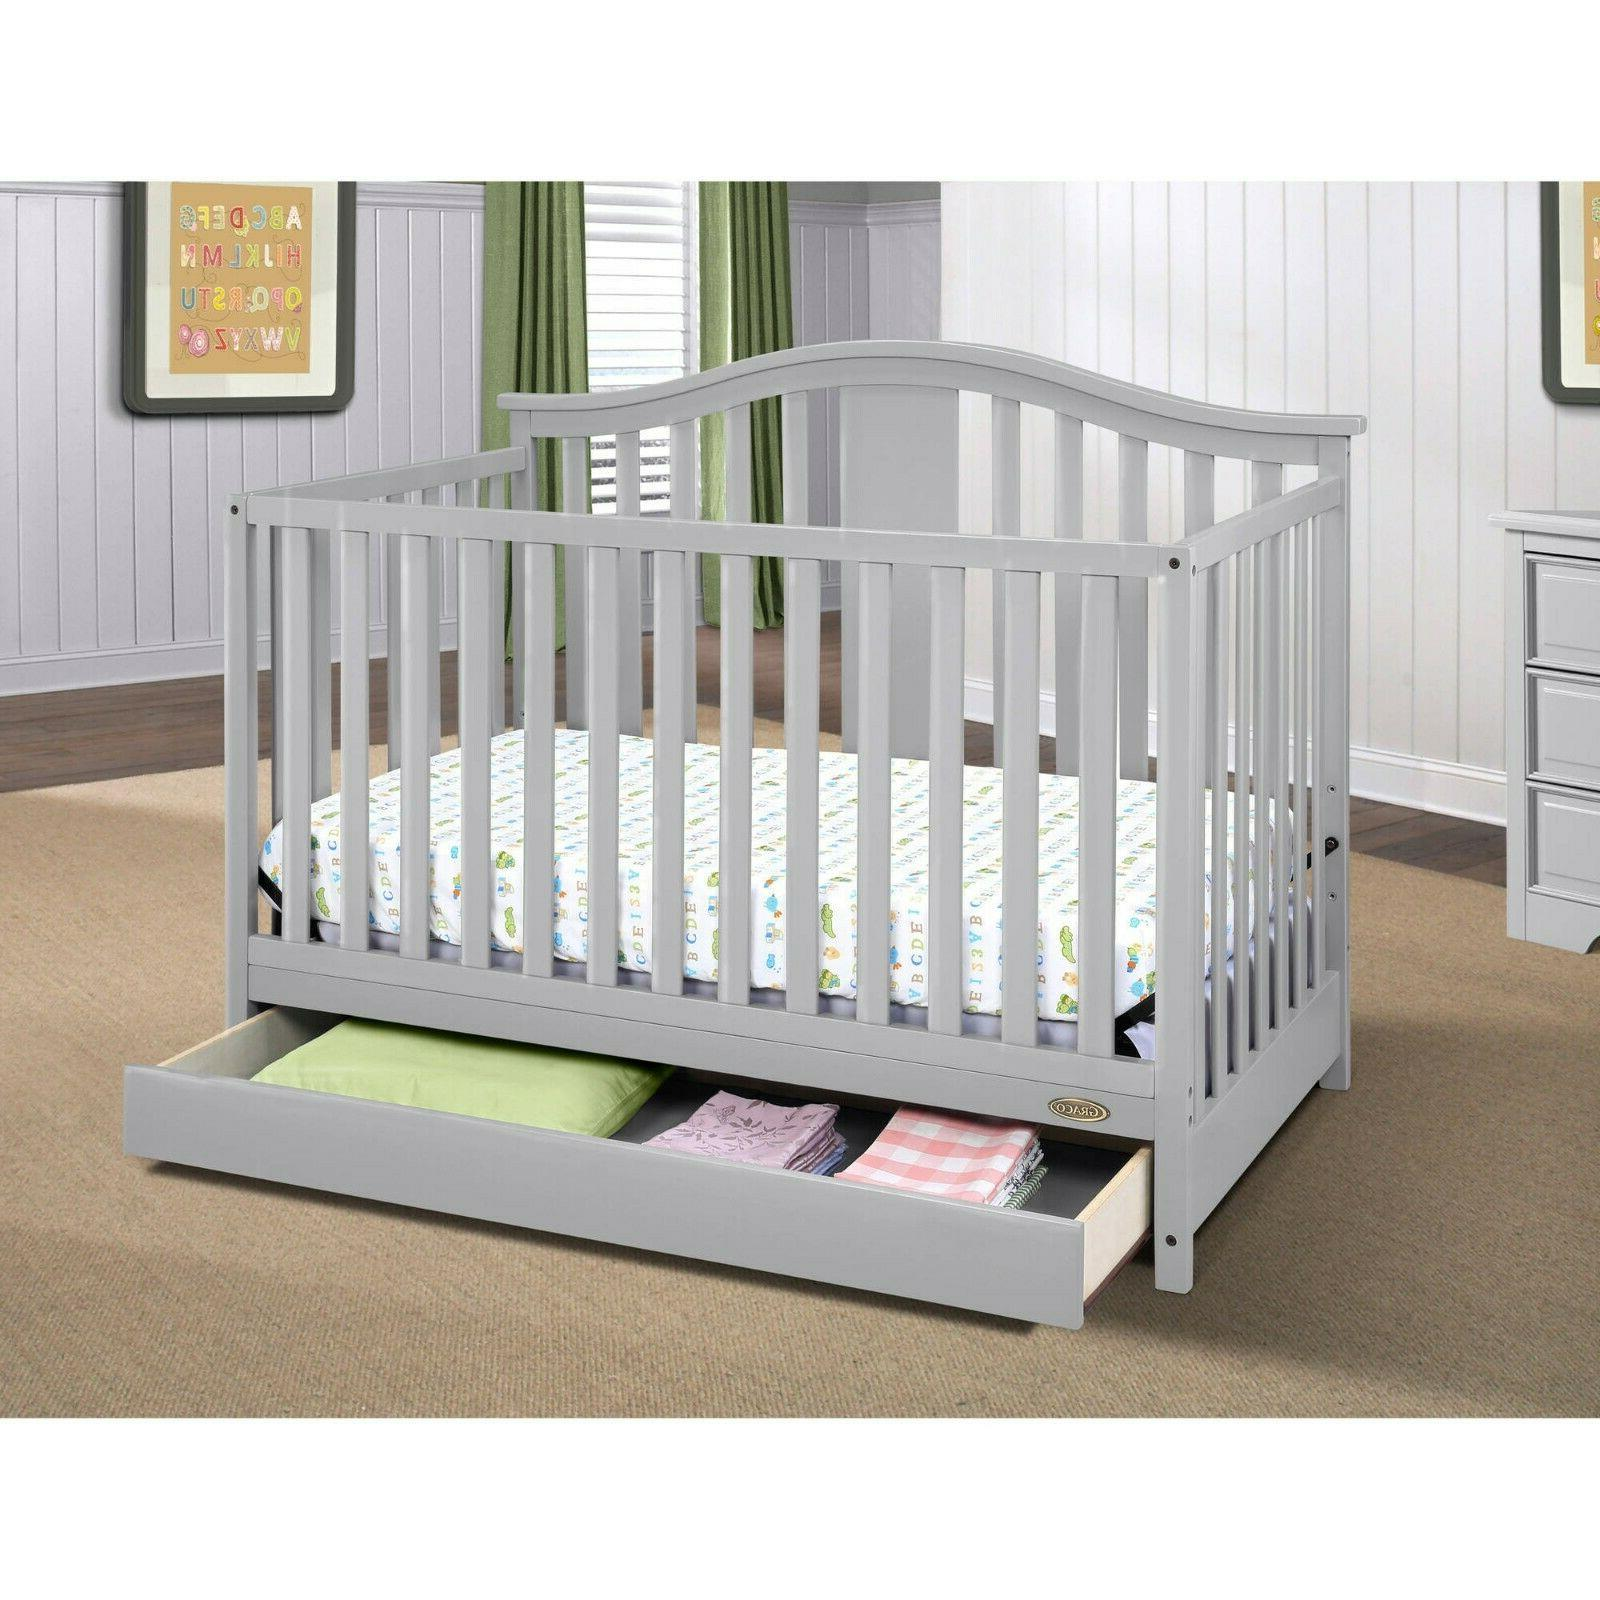 4 in 1 Convertible Baby Crib Mattress Infant Toddler Bed Nur